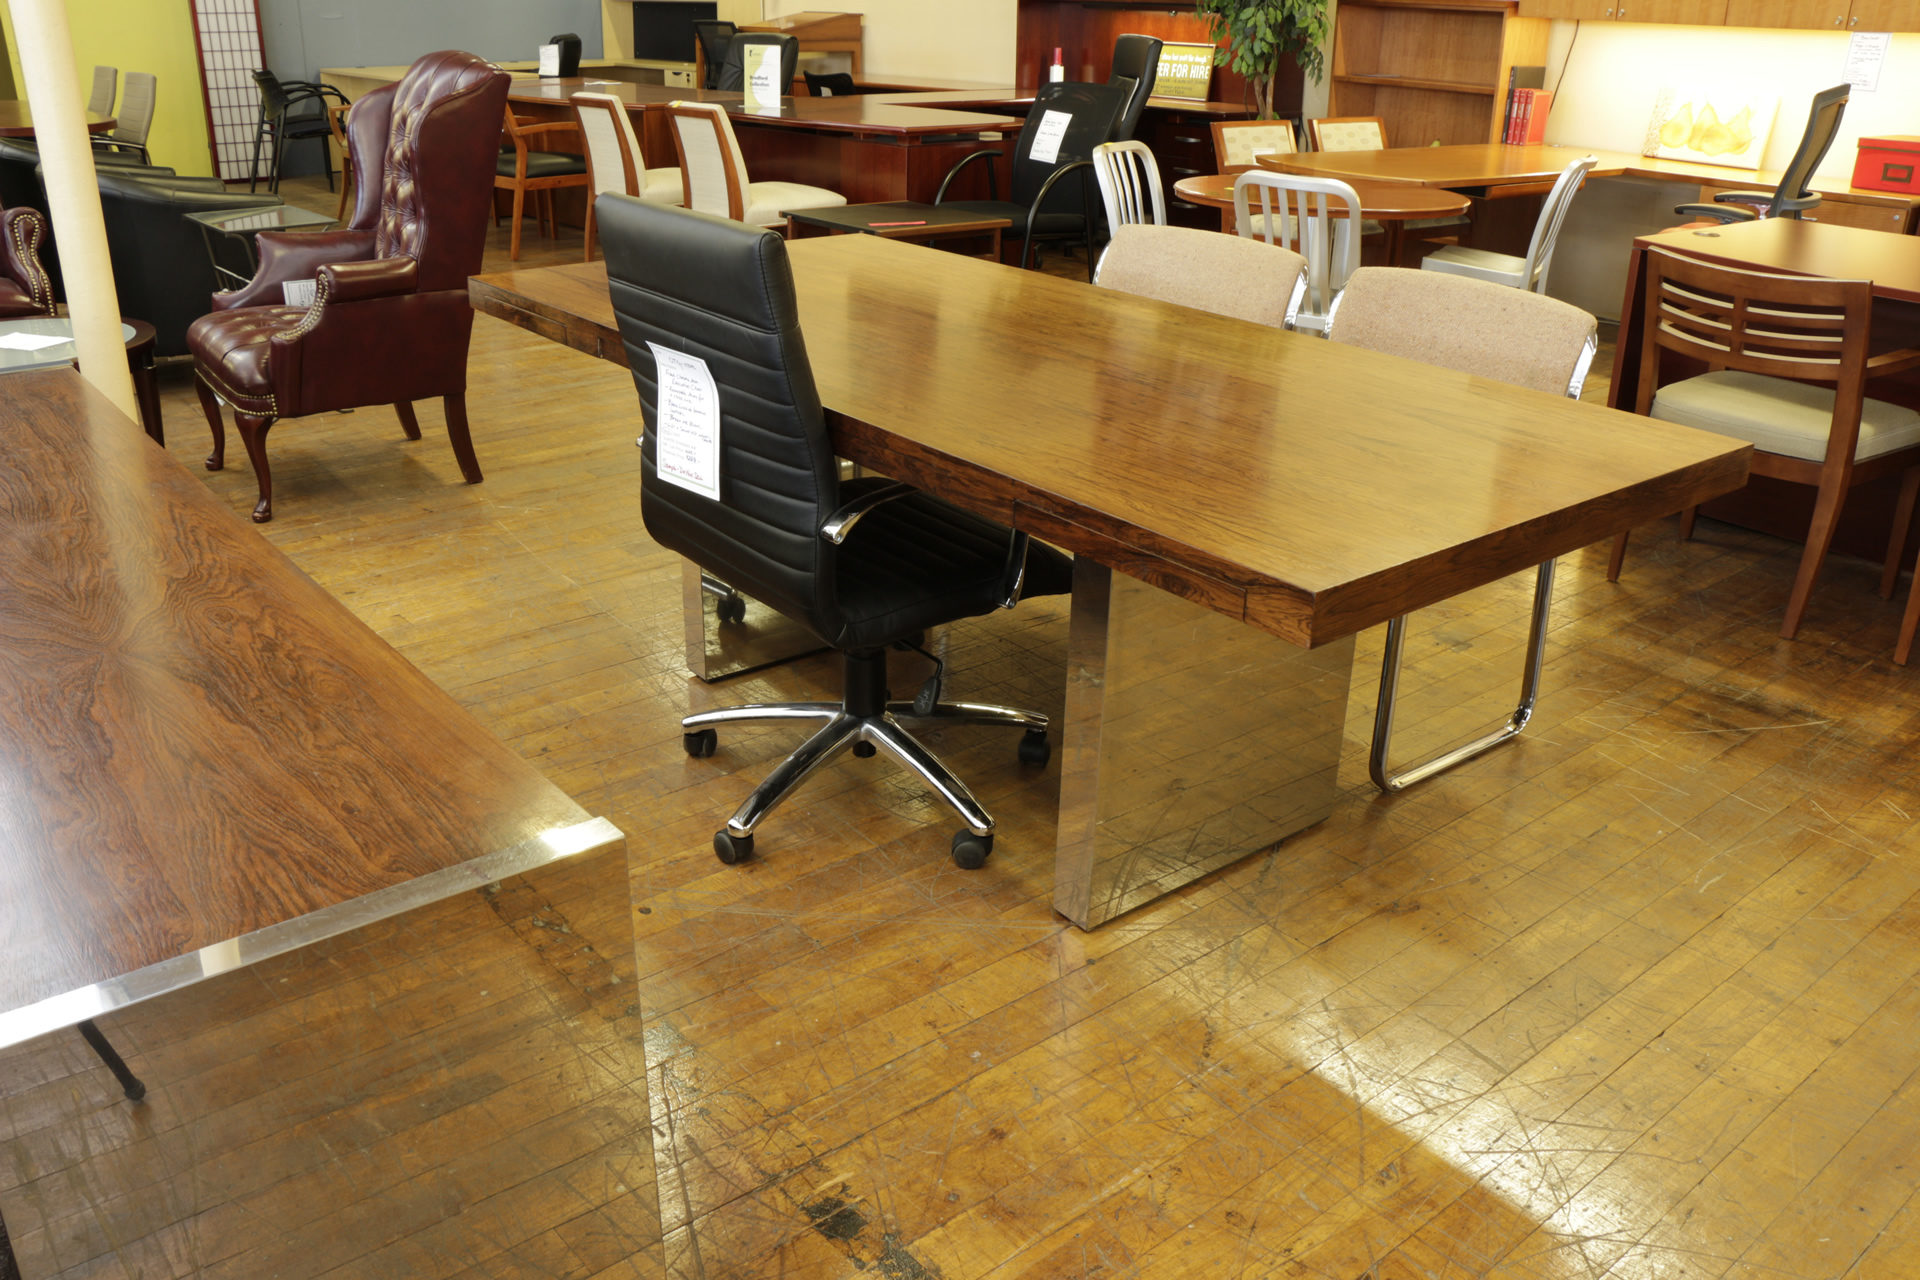 peartreeofficefurniture_peartreeofficefurniture_mg_2038.jpg